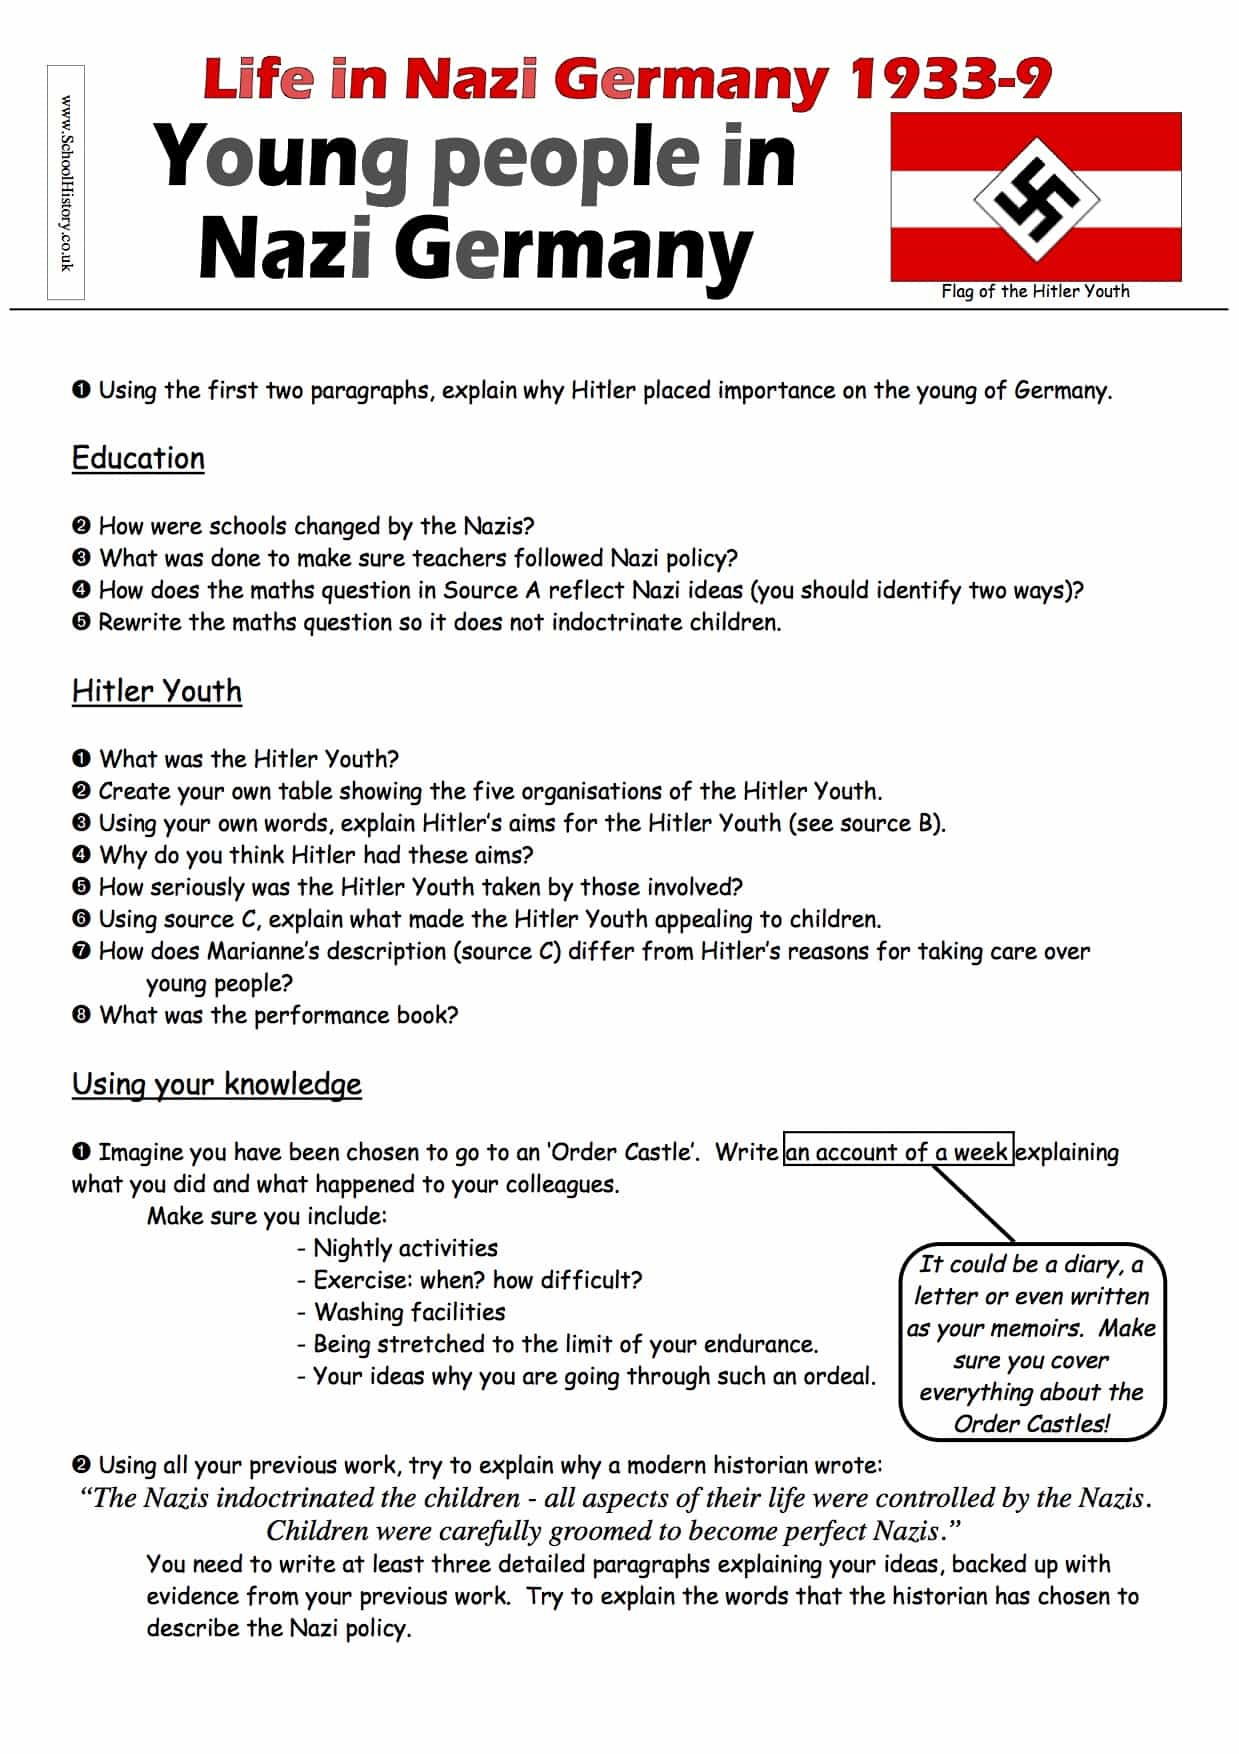 Life In Nazi Germany For The Youth Worksheet